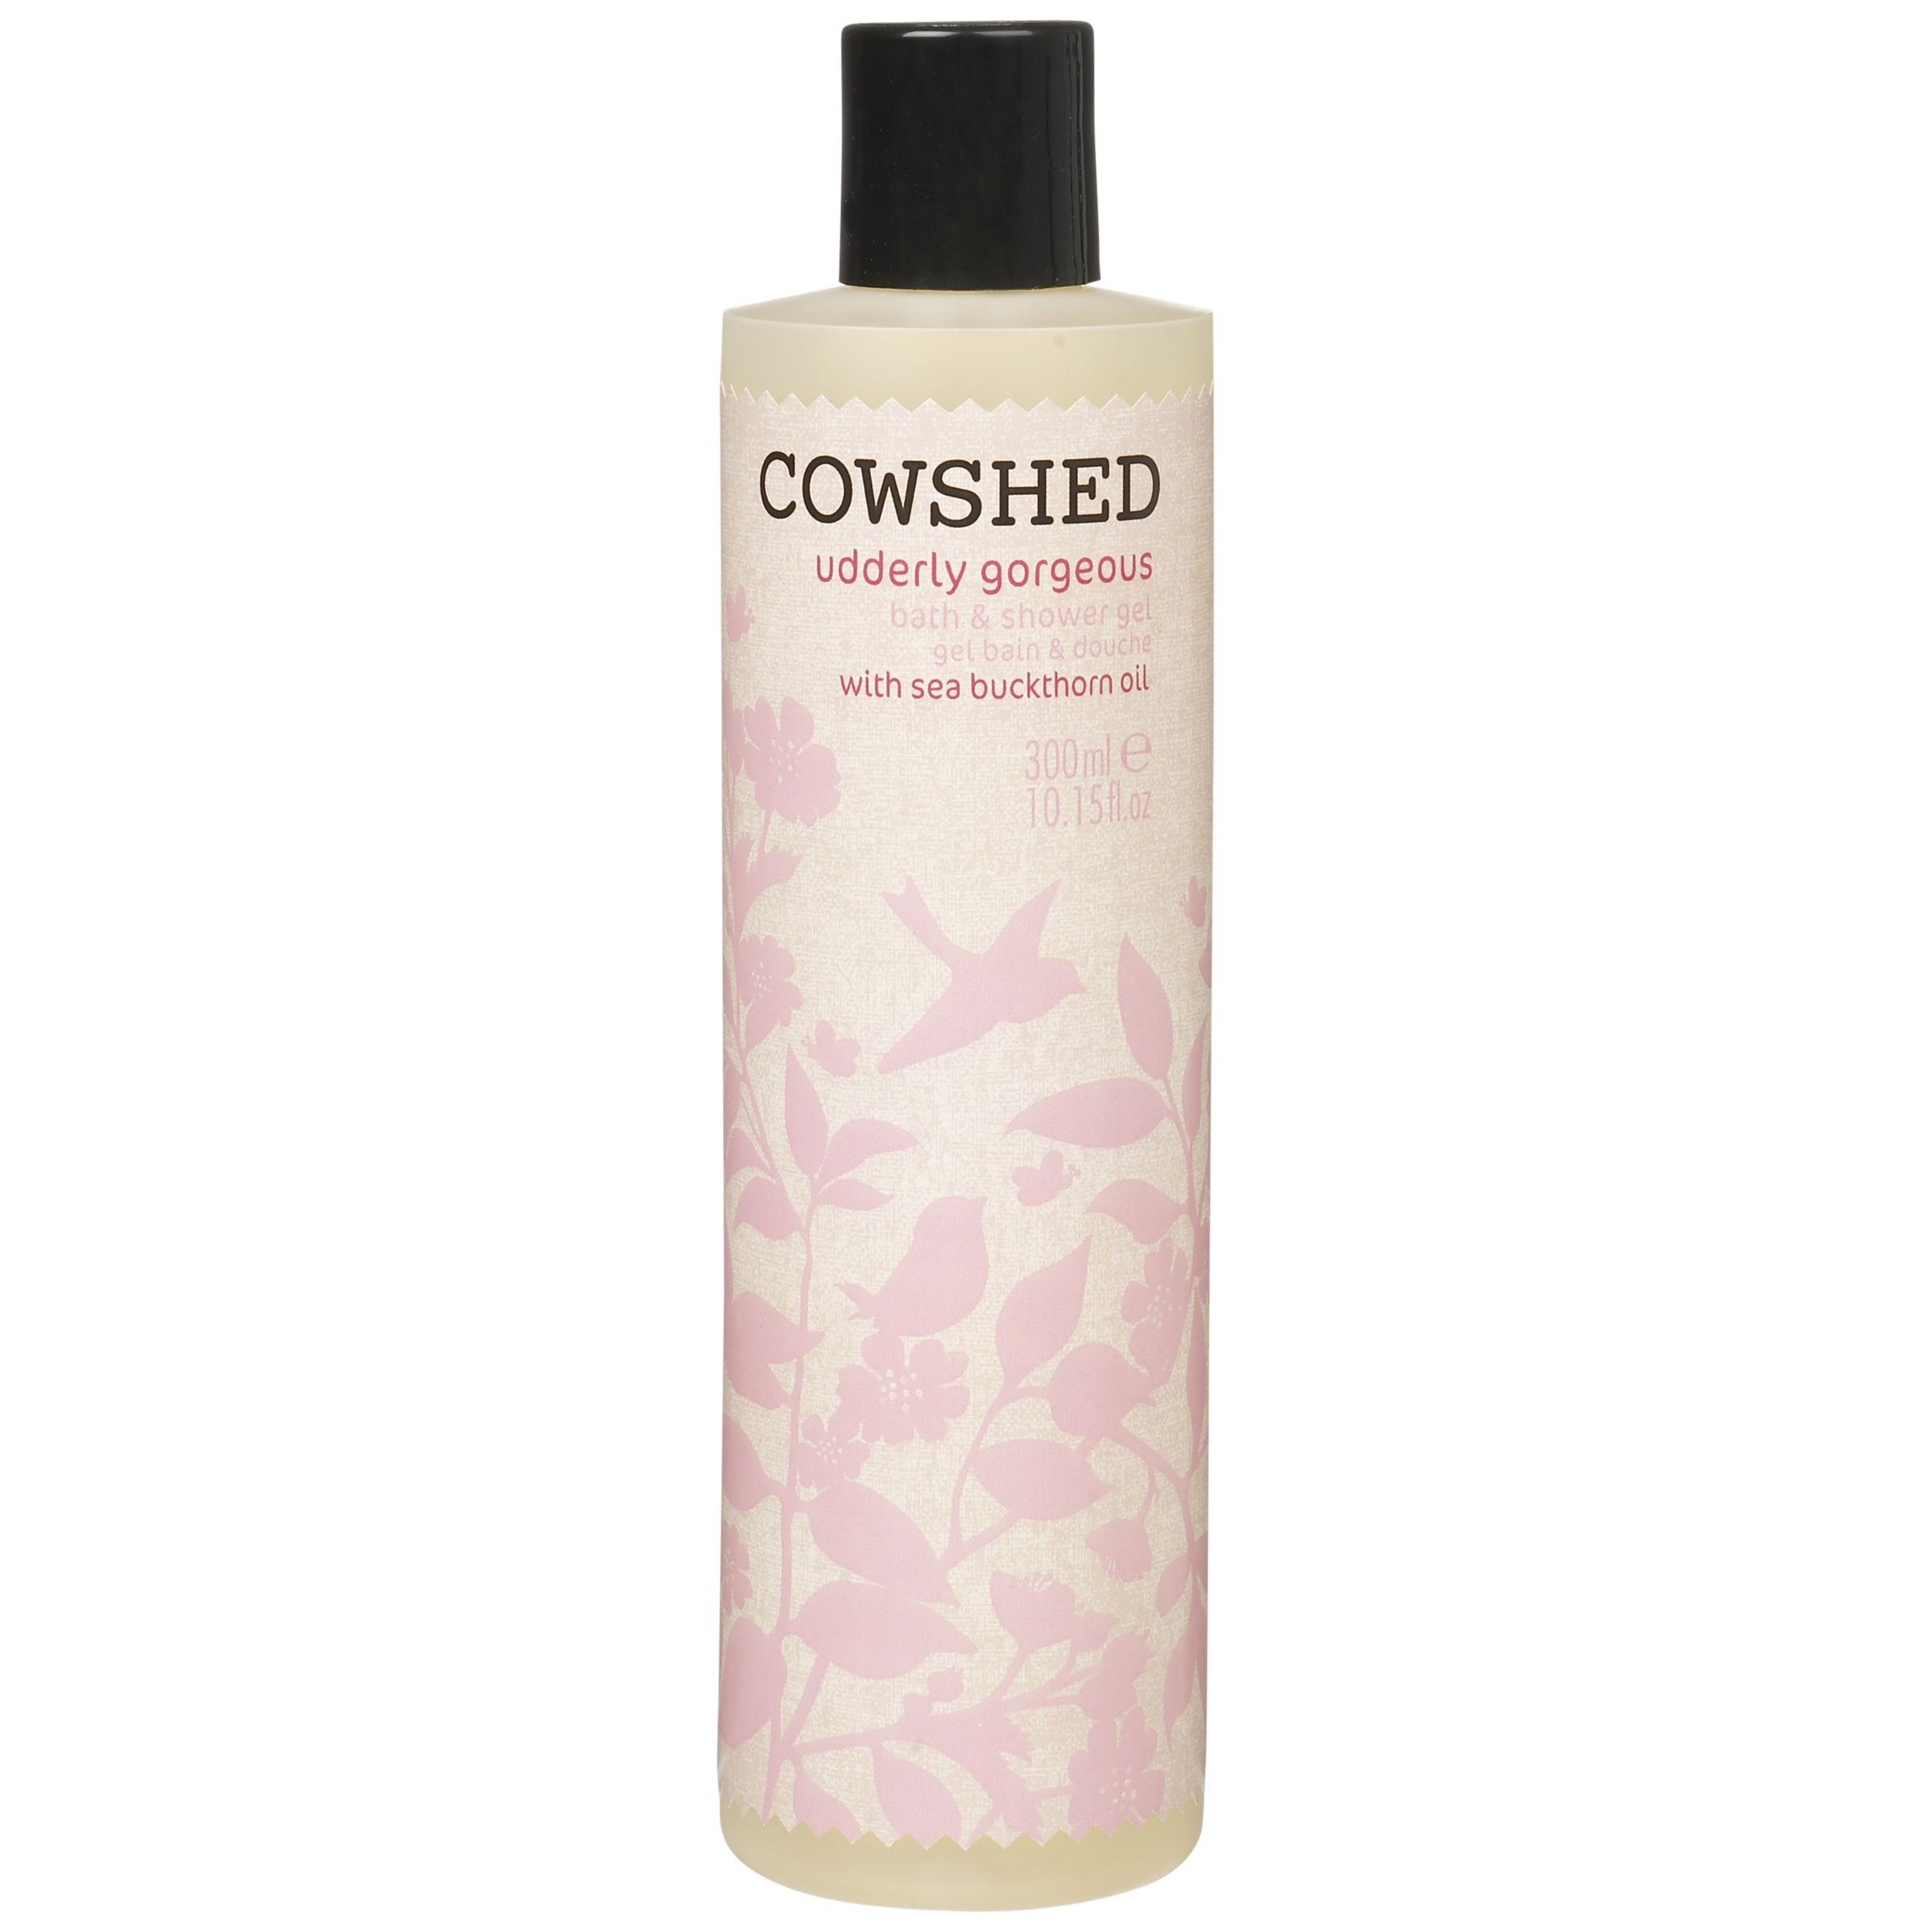 Cowshed Cowshed Udderly Gorgeous Relaxing Bath and Shower Gel, 300ml